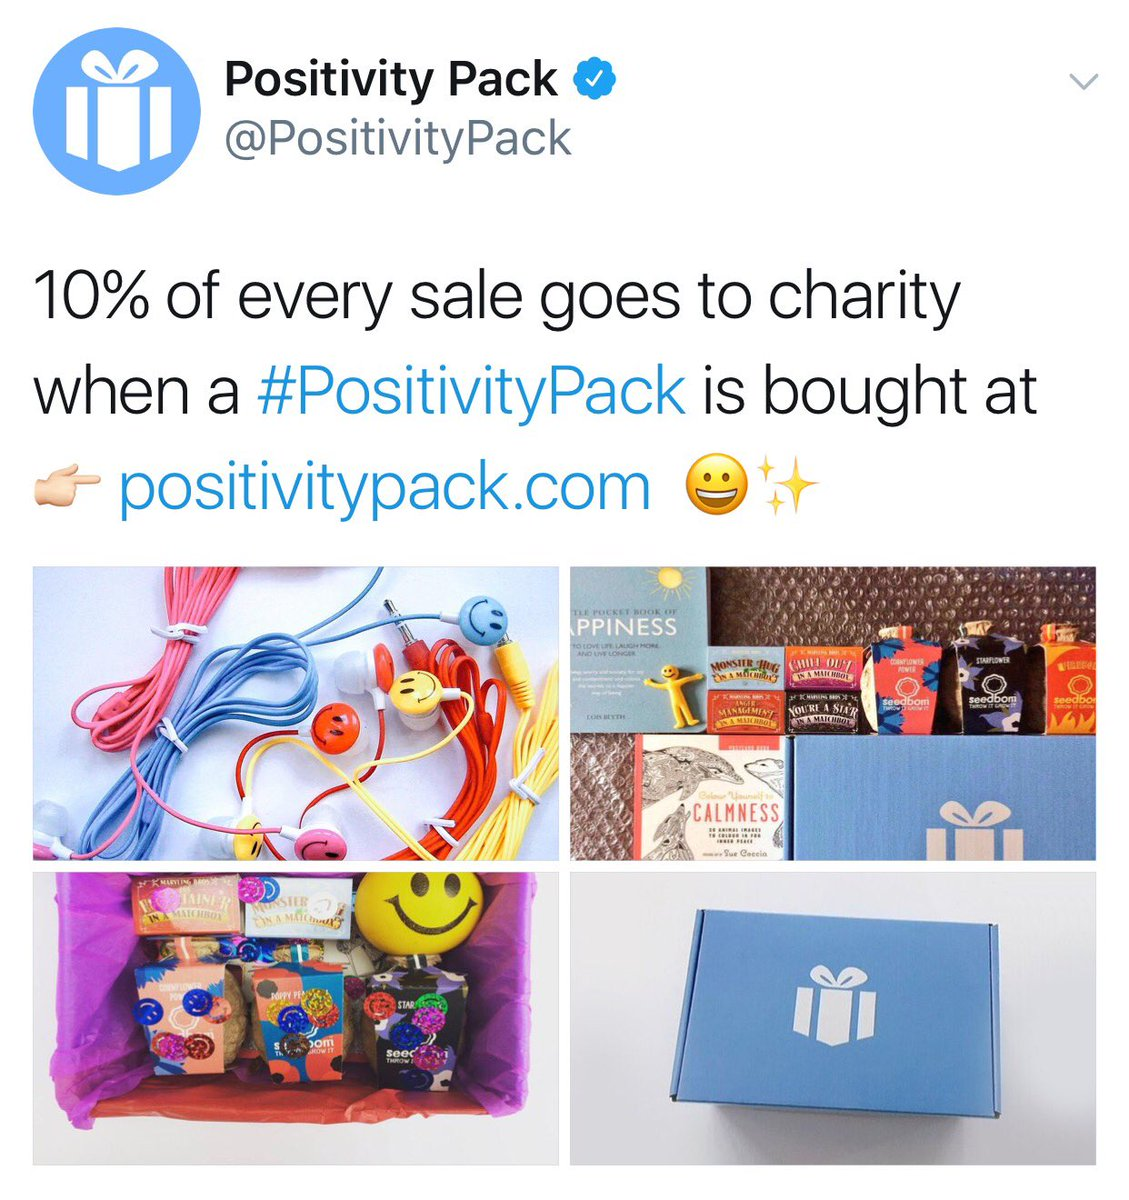 Just ordered my @PositivityPack from https://t.co/MOzO1crvy9 have you ordered yours?!